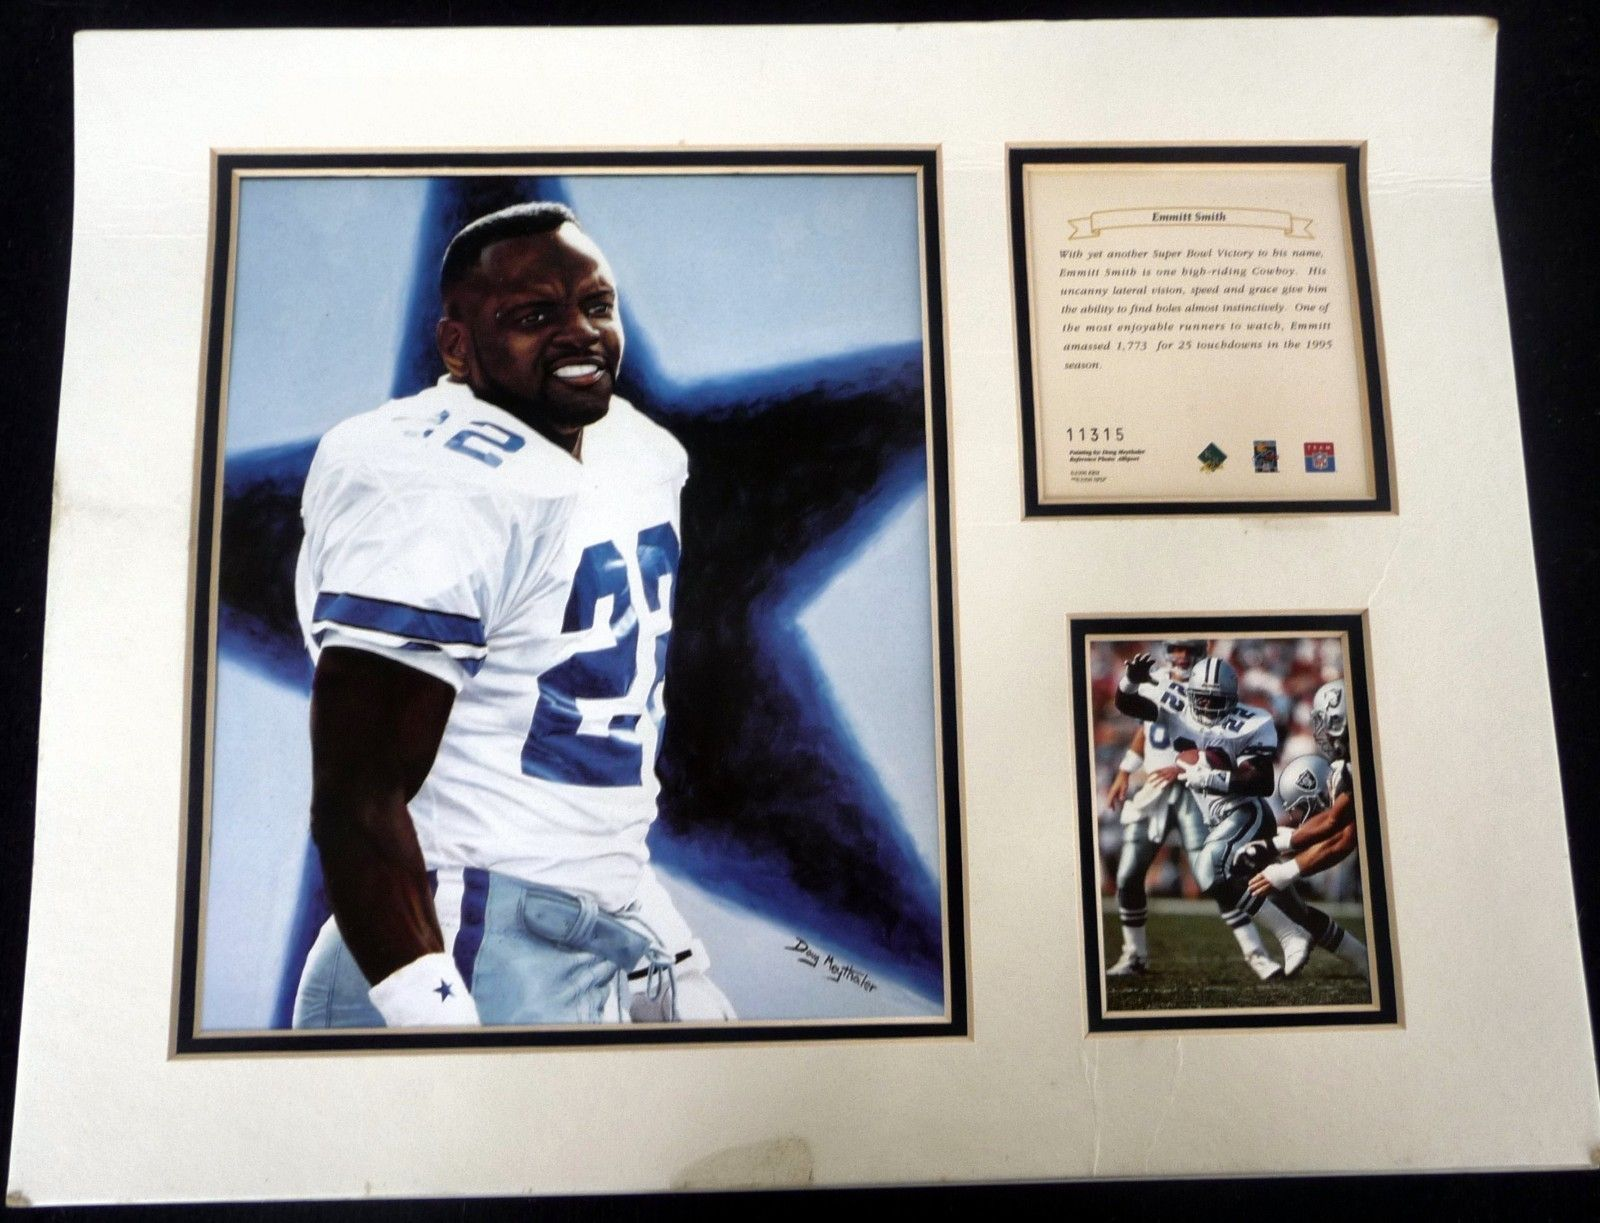 1995 EMMITT SMITH DALLAS COWBOYS Doug Meythaler Lithograph Print ...